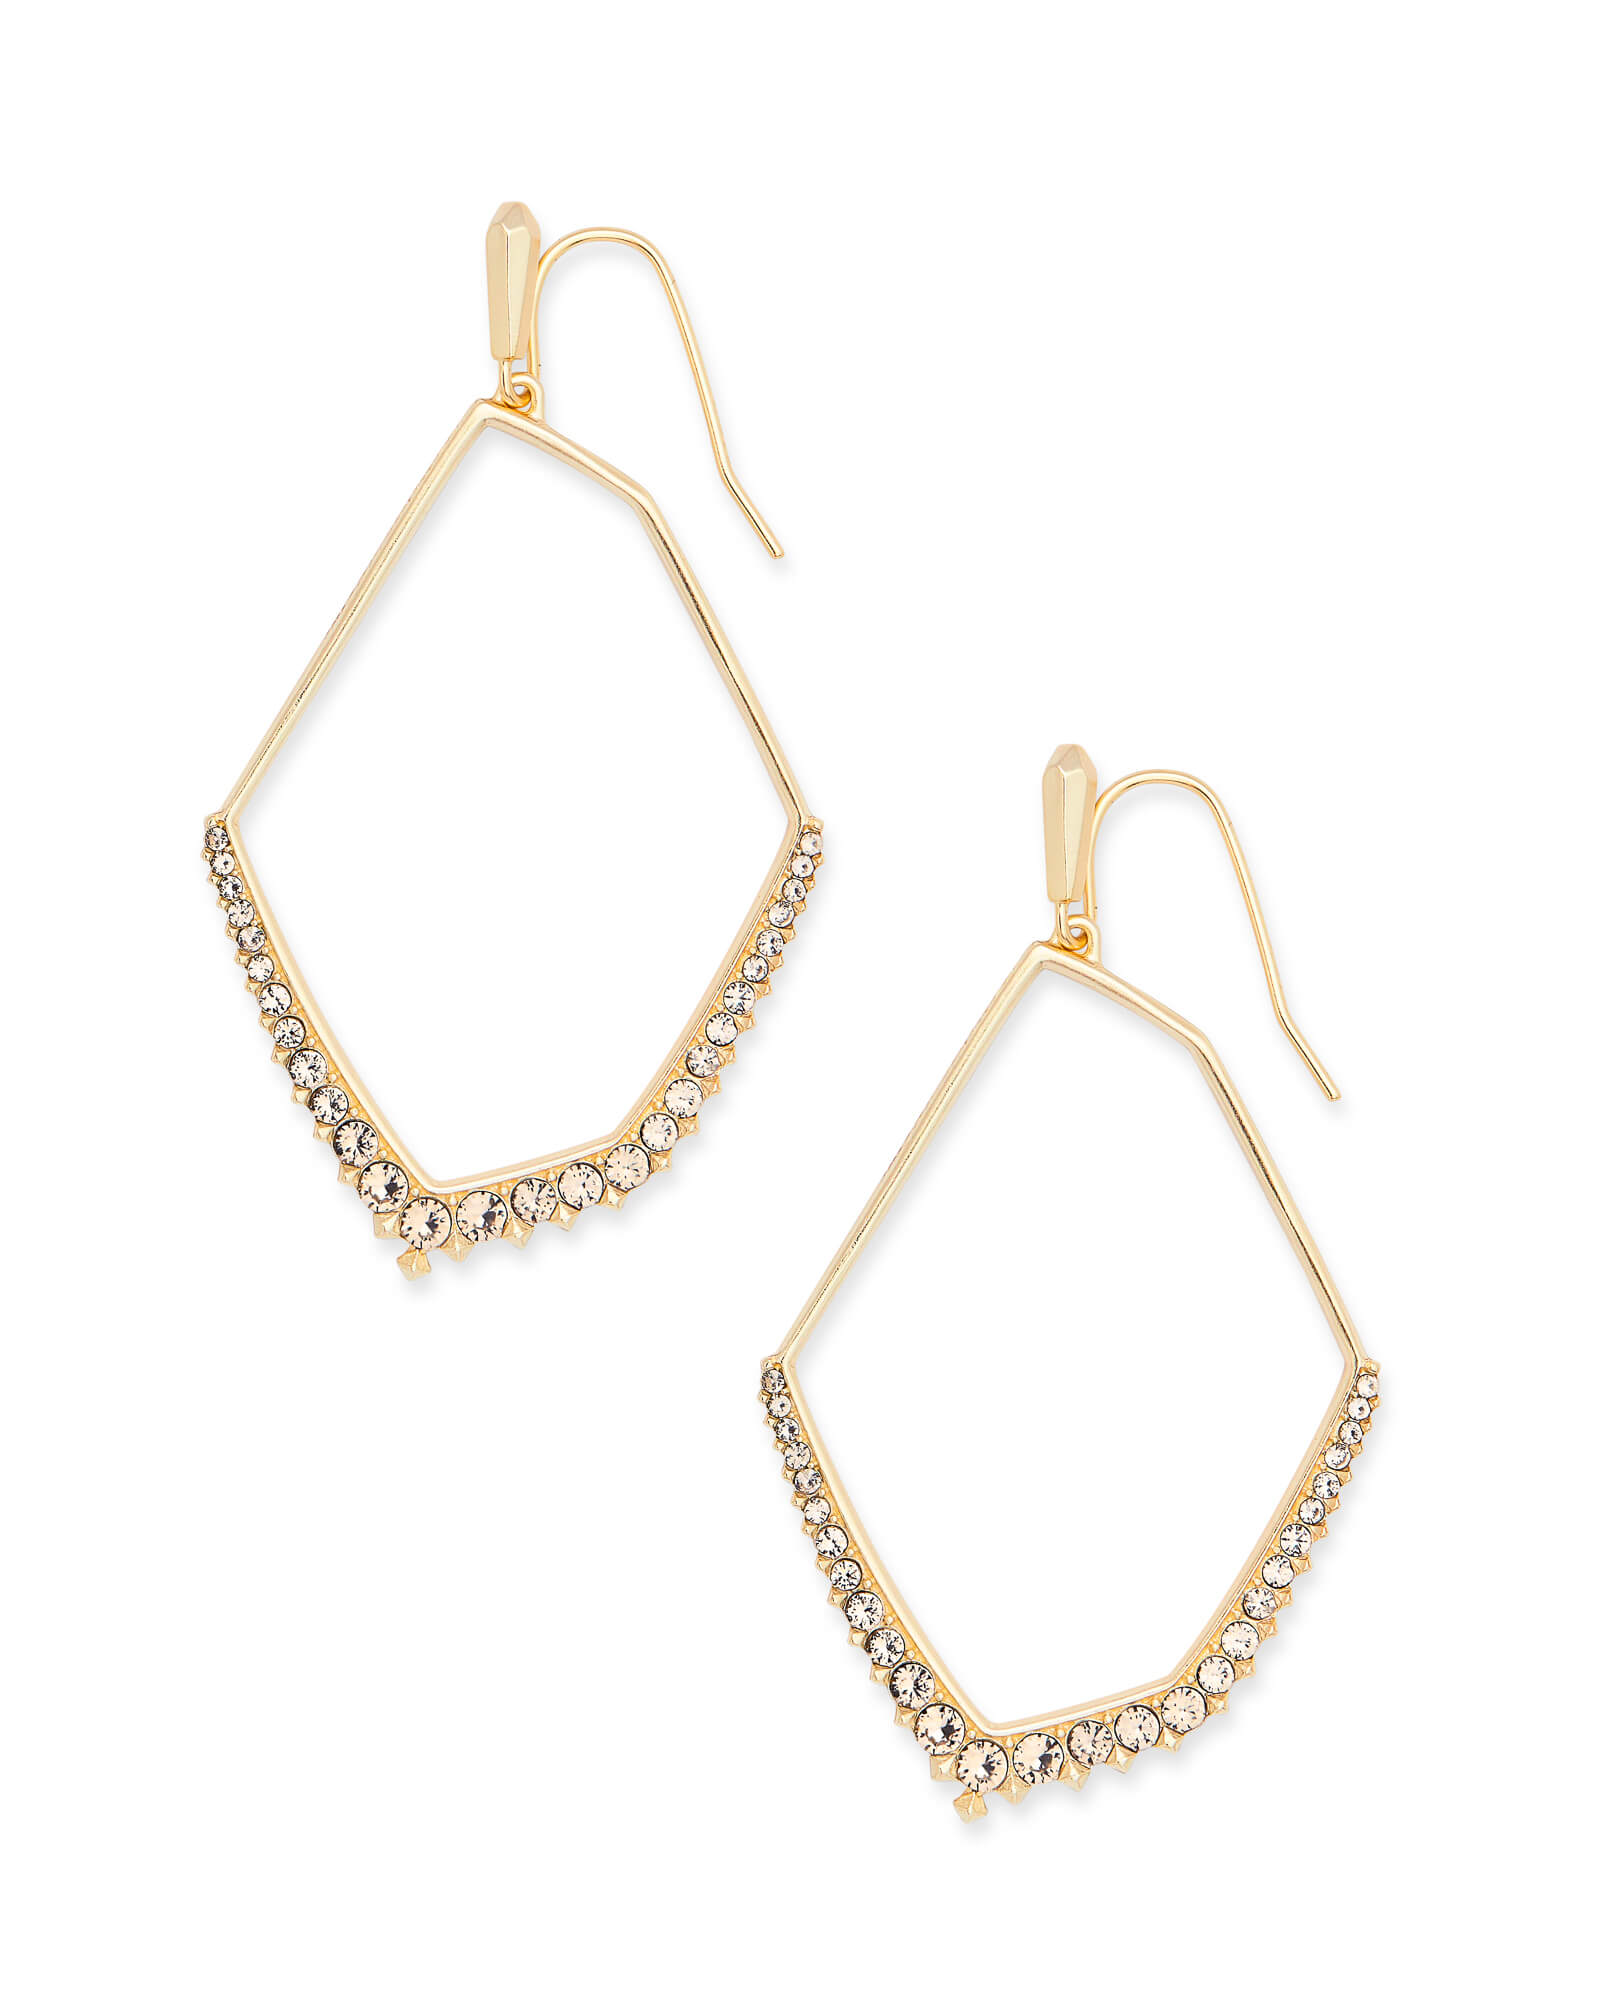 Nell Statement Earrings